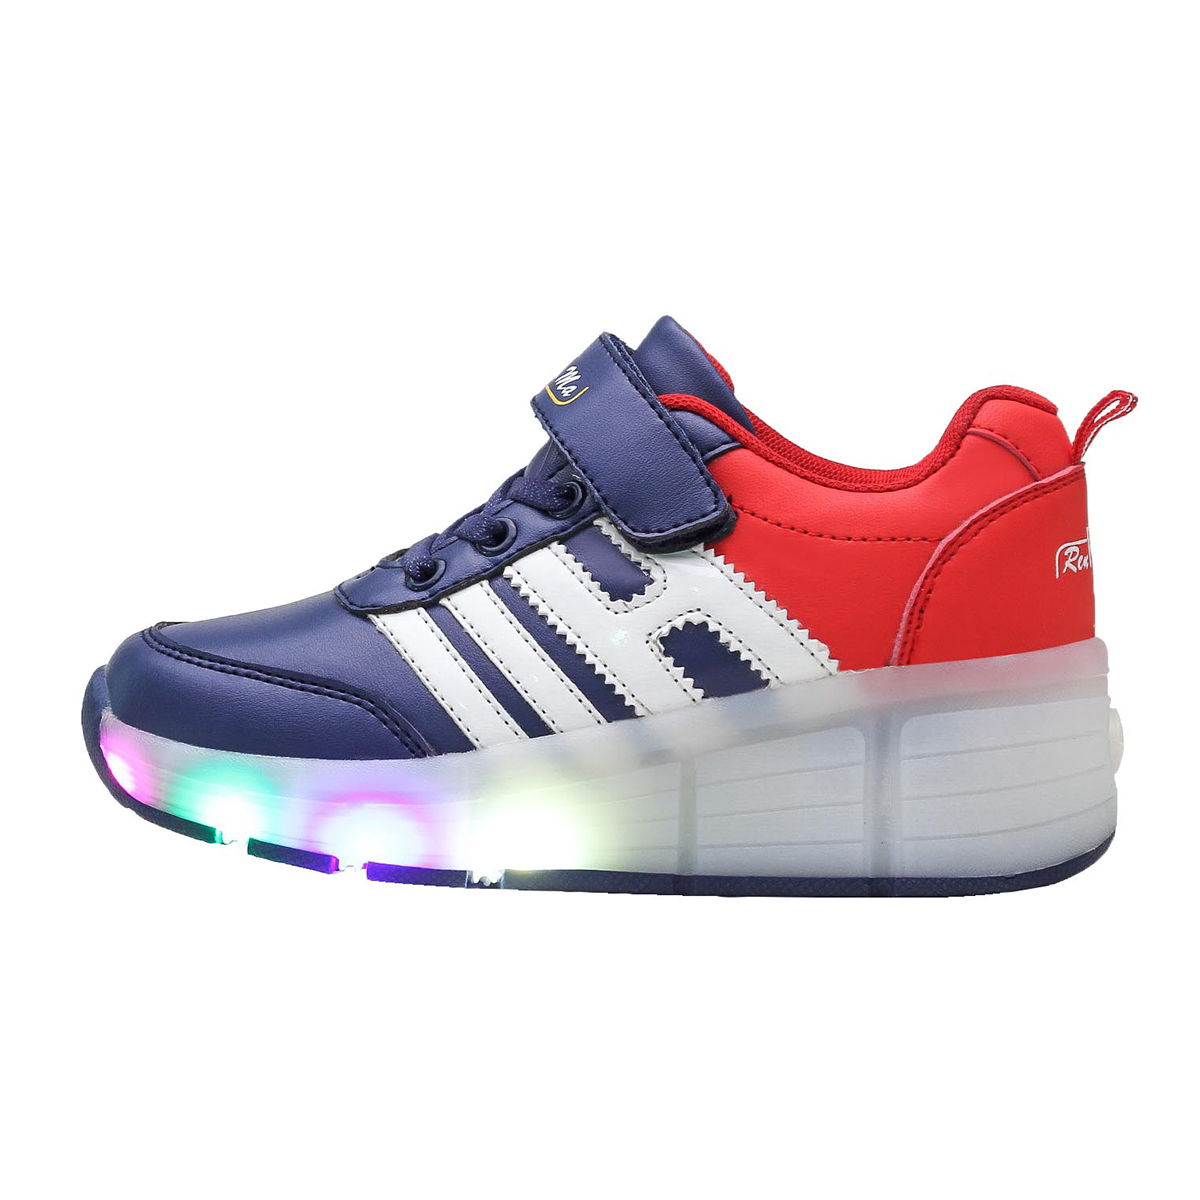 Roller shoes shop - New 2017 Kids Shoes Children Roller Skate Shoes Sneakers With Wheel Child Jazzy Junior Boys Girls Automatic Led Lighted Flashing